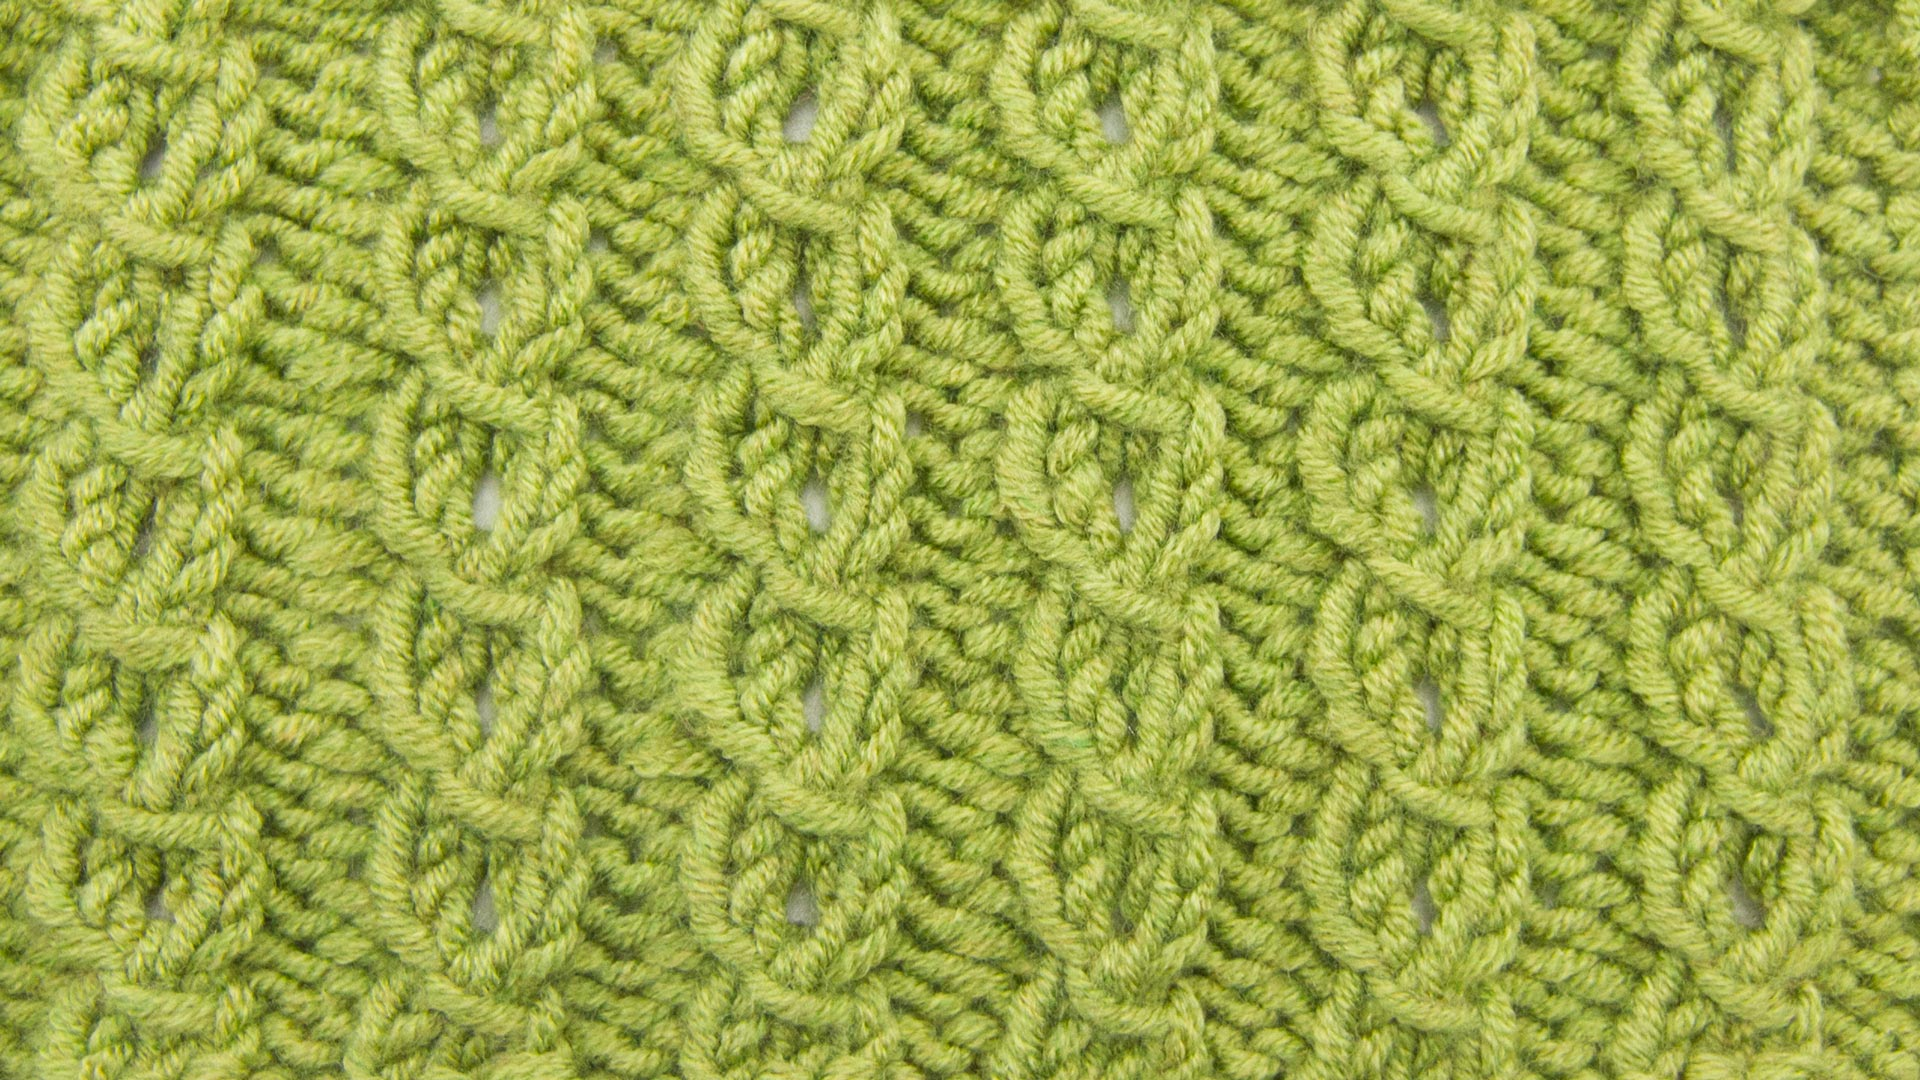 Faux Cable Edging Knitting Stitch New Stitch A Day